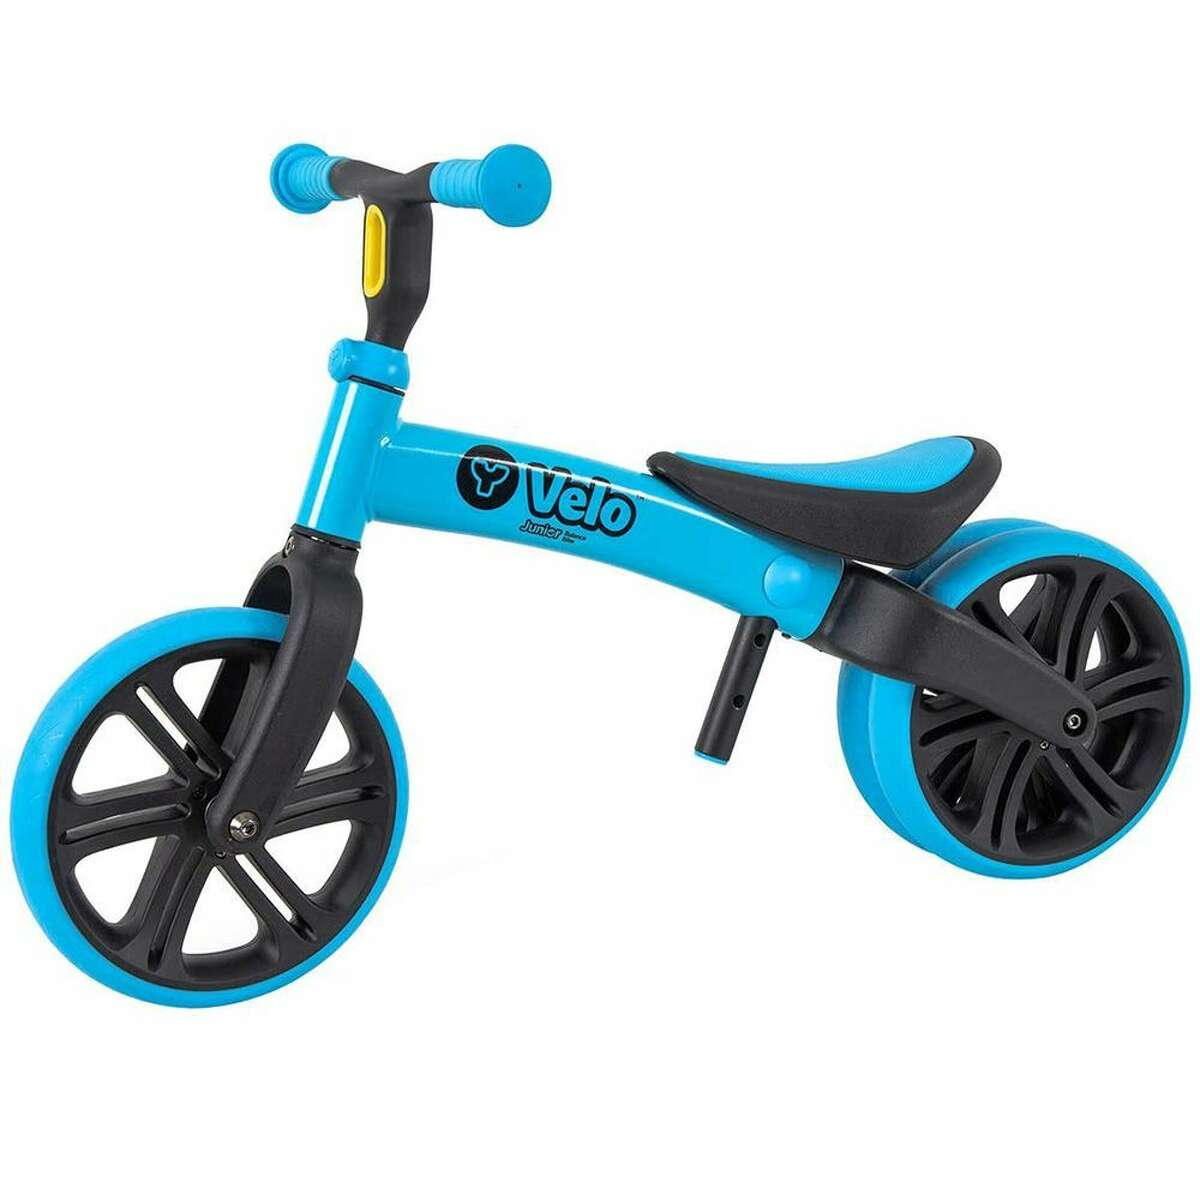 Yvolution Y Velo Junior Toddler Bike : $59.99 Shop Now If warm weather and the call of the playground aren't enough to lure your toddler outside to play, this bright blue balance bike will definitely do it. The soft-grip handles are comfy to hold, and both the seat and handlebar are easy to adjust as your tot grows. The double width back wheel helps your toddler master bike balancing so that they can spend more time riding than tumbling.